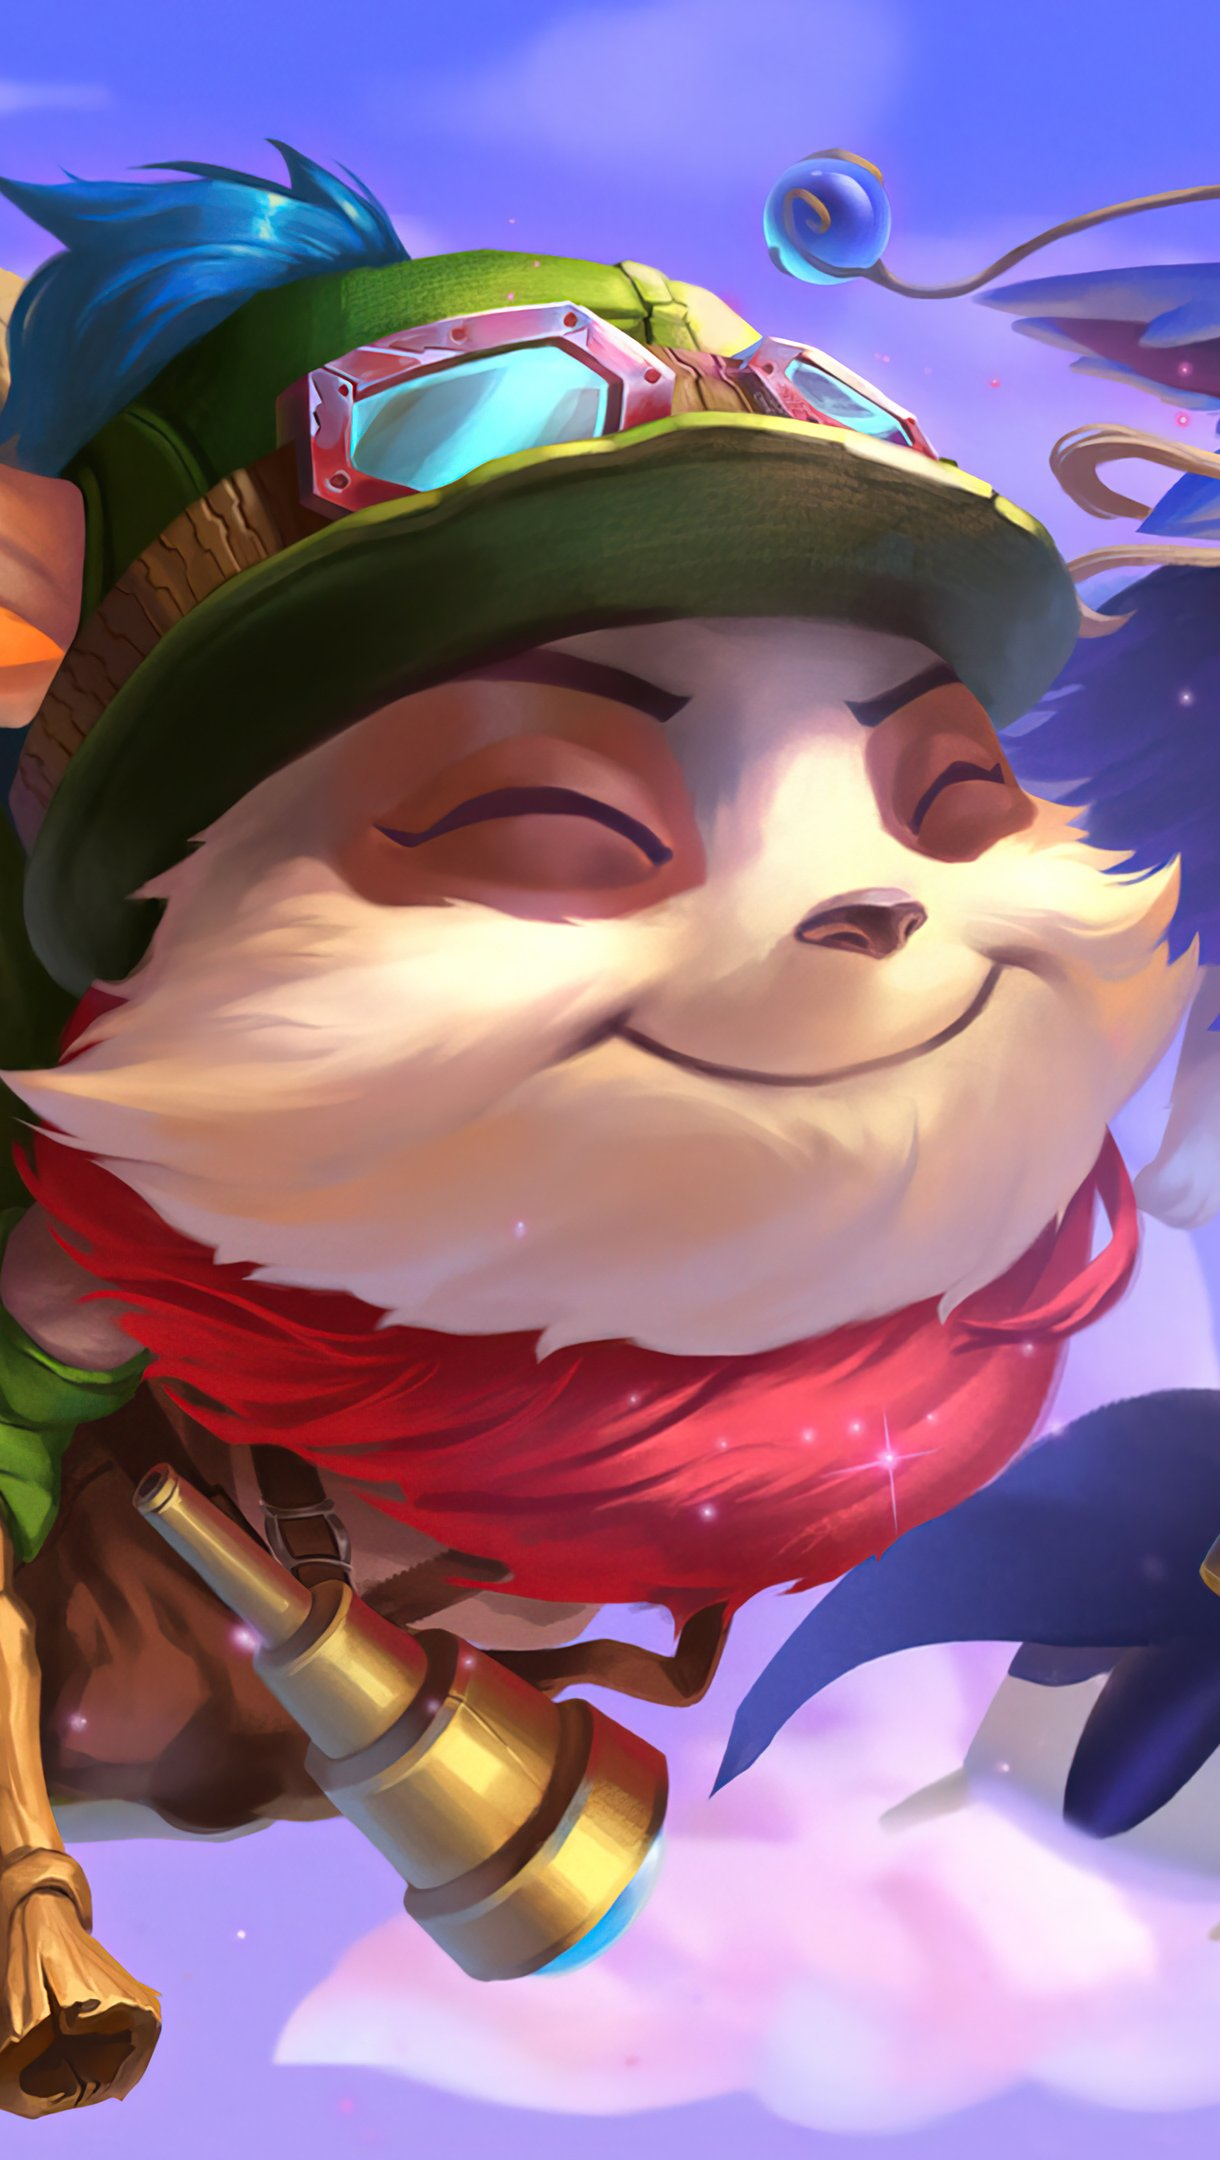 Wallpaper Teemo and Lulu from League of Legends Vertical